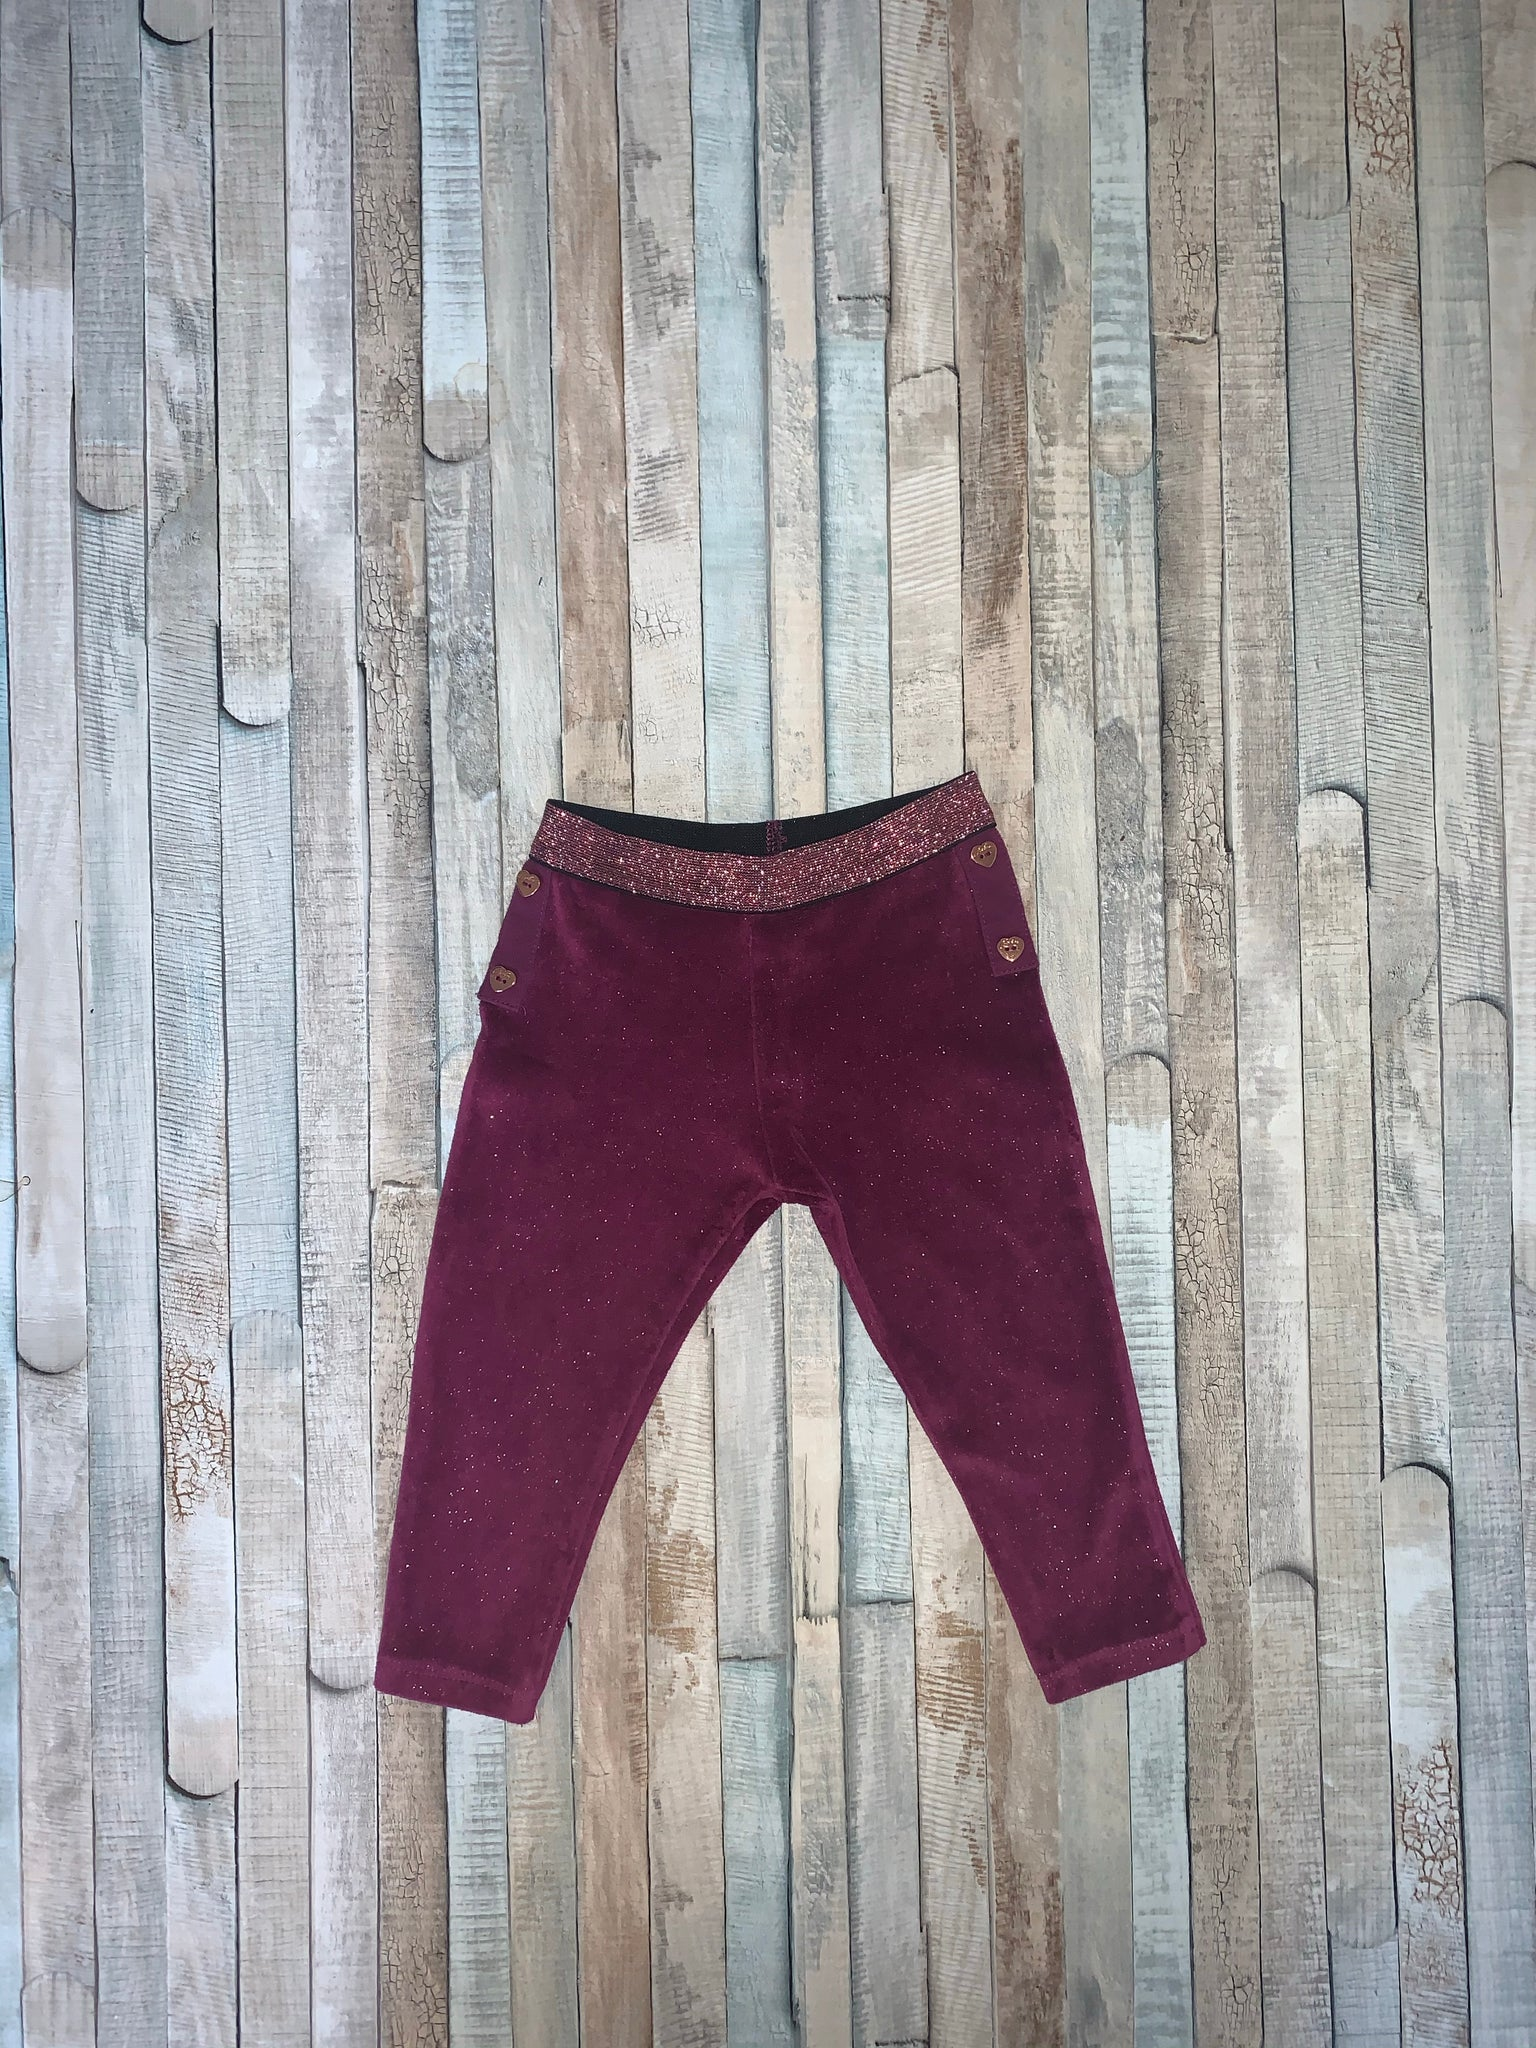 Baker by Ted Baker Purple Sparkle Leggings Age 9-12 Months - Nippers Preloved children's clothing